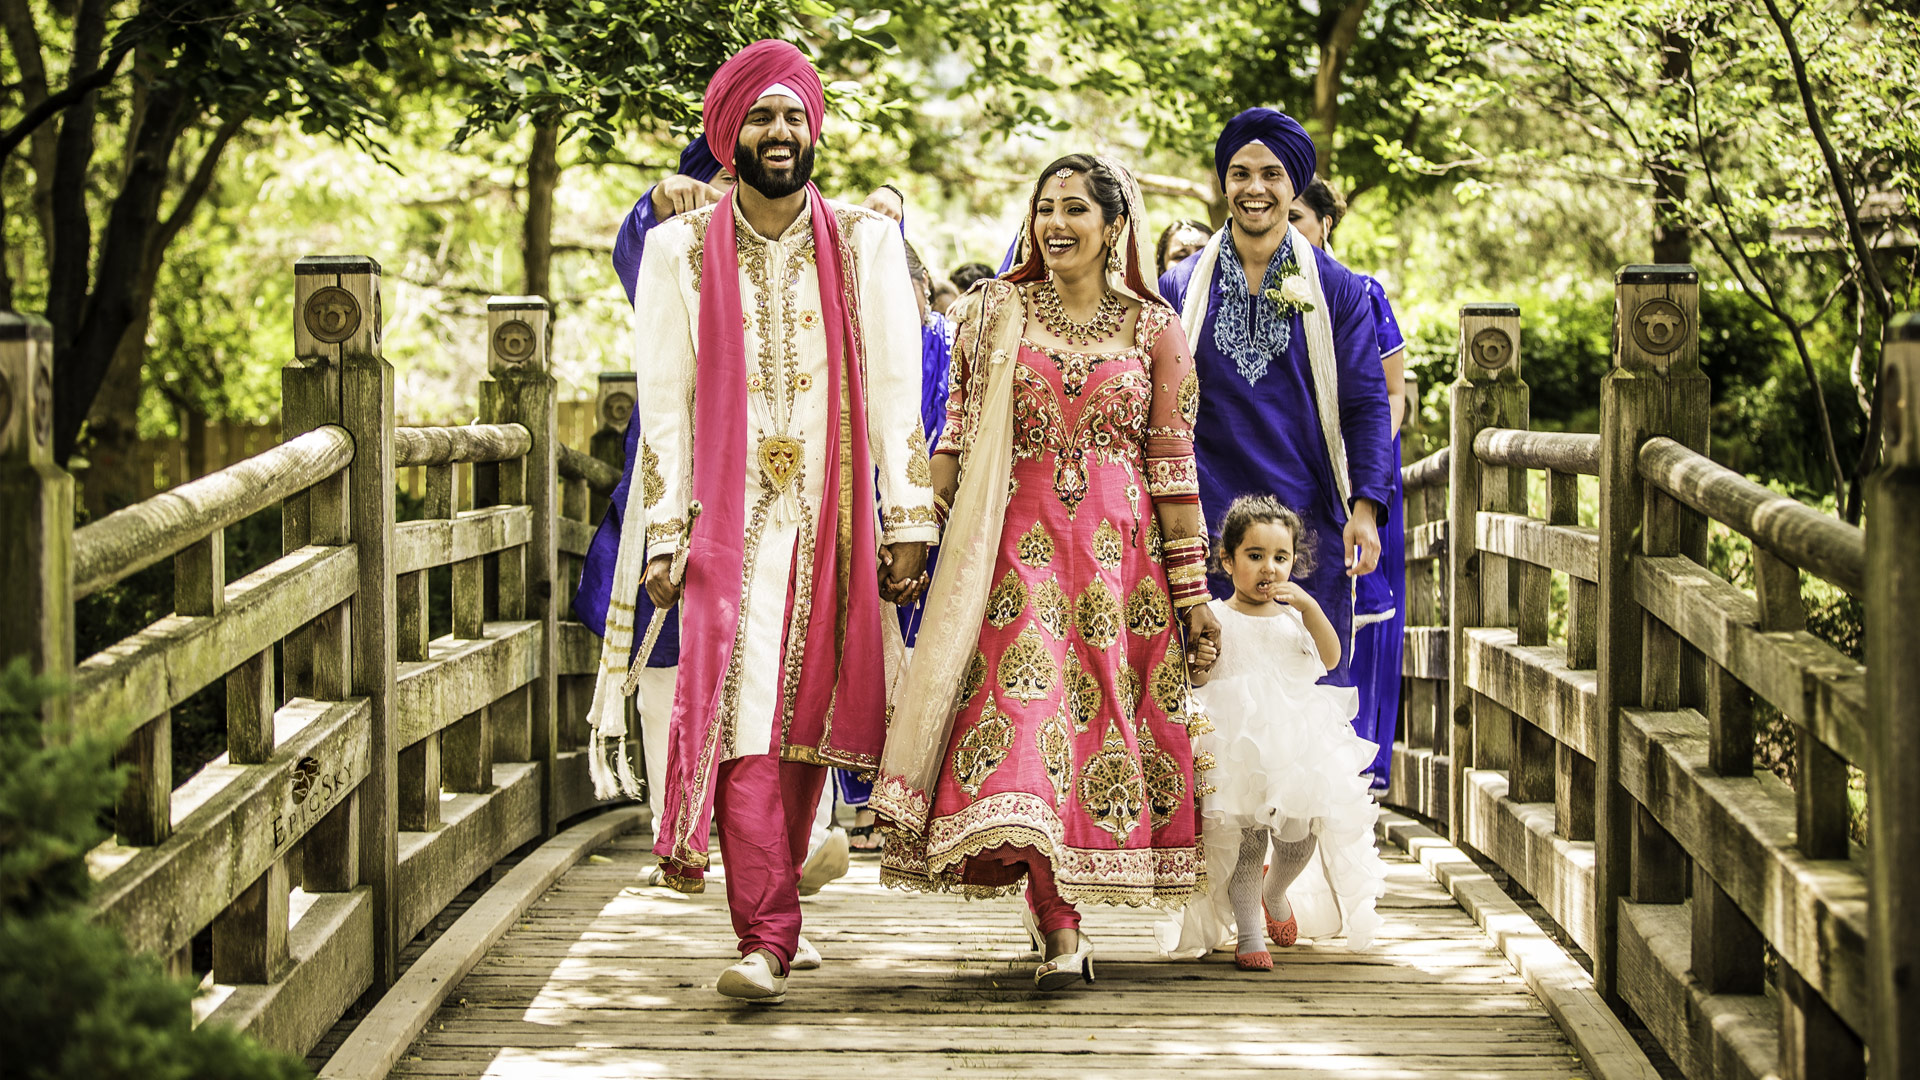 epic_sky_pictures_bridal_photography_bridge_wedding_party_fun_laughing_detail_candid_wedding_sikh_bride_website